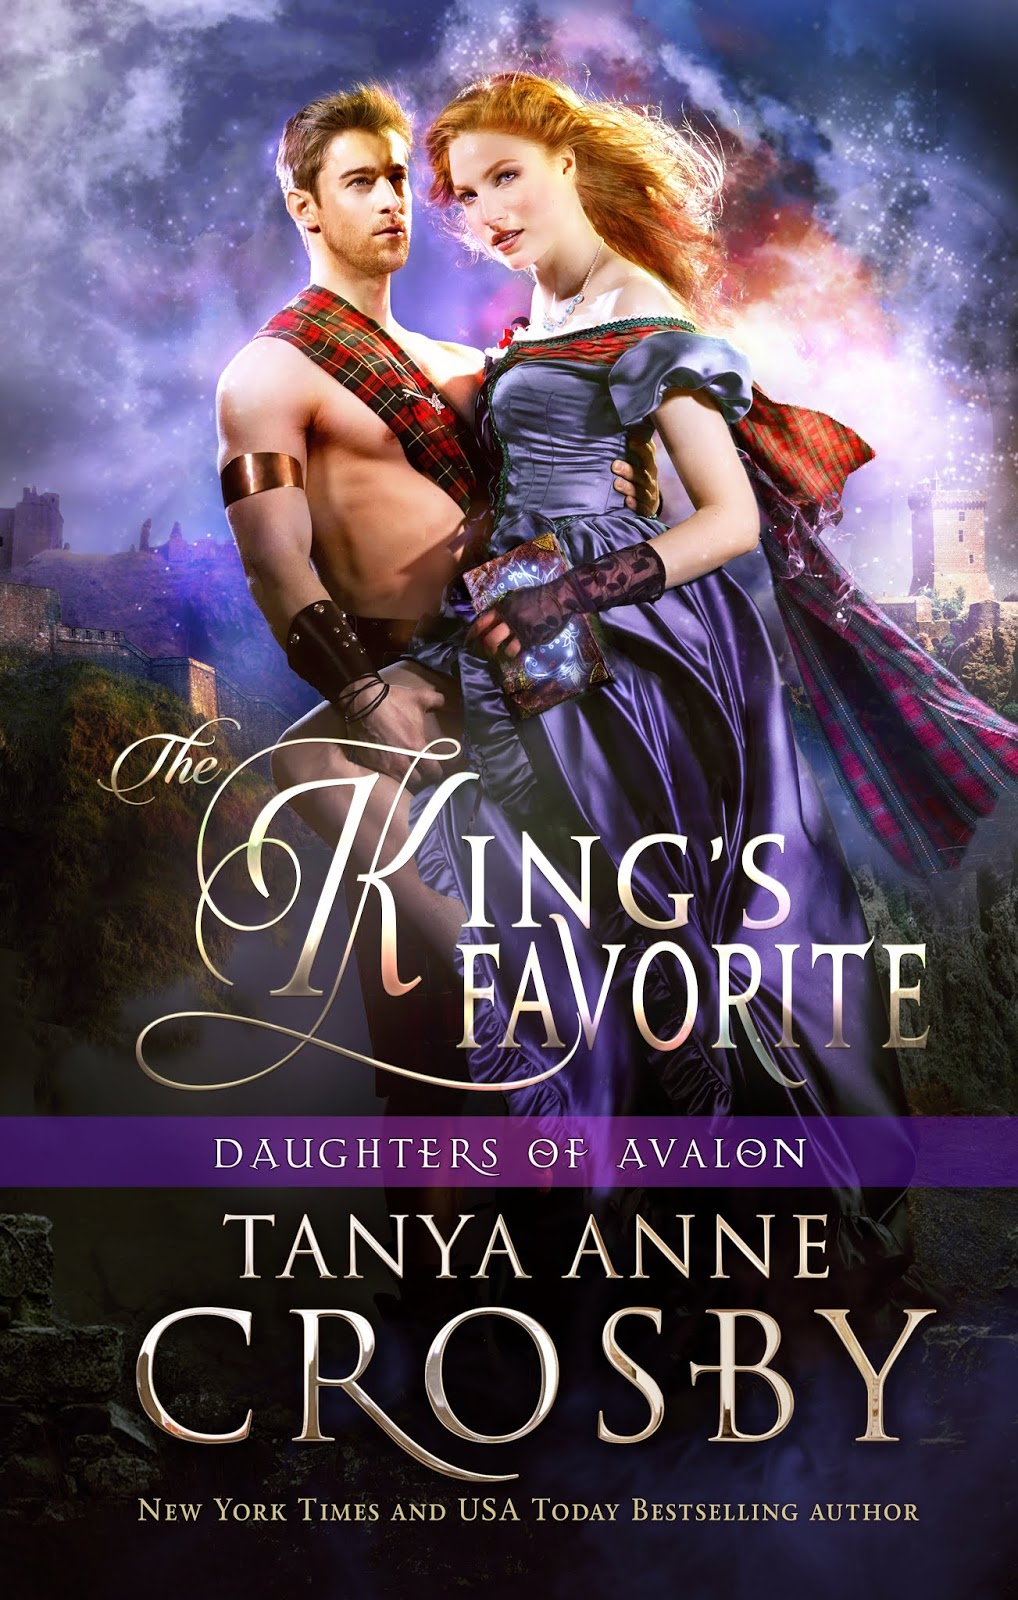 Its raining books the kings favorite by tanya anne crosby fearing her gifts will be used to defeat her sister matilda elspeth escapes the black mountain priory that has sheltered them since their fathers death fandeluxe Image collections